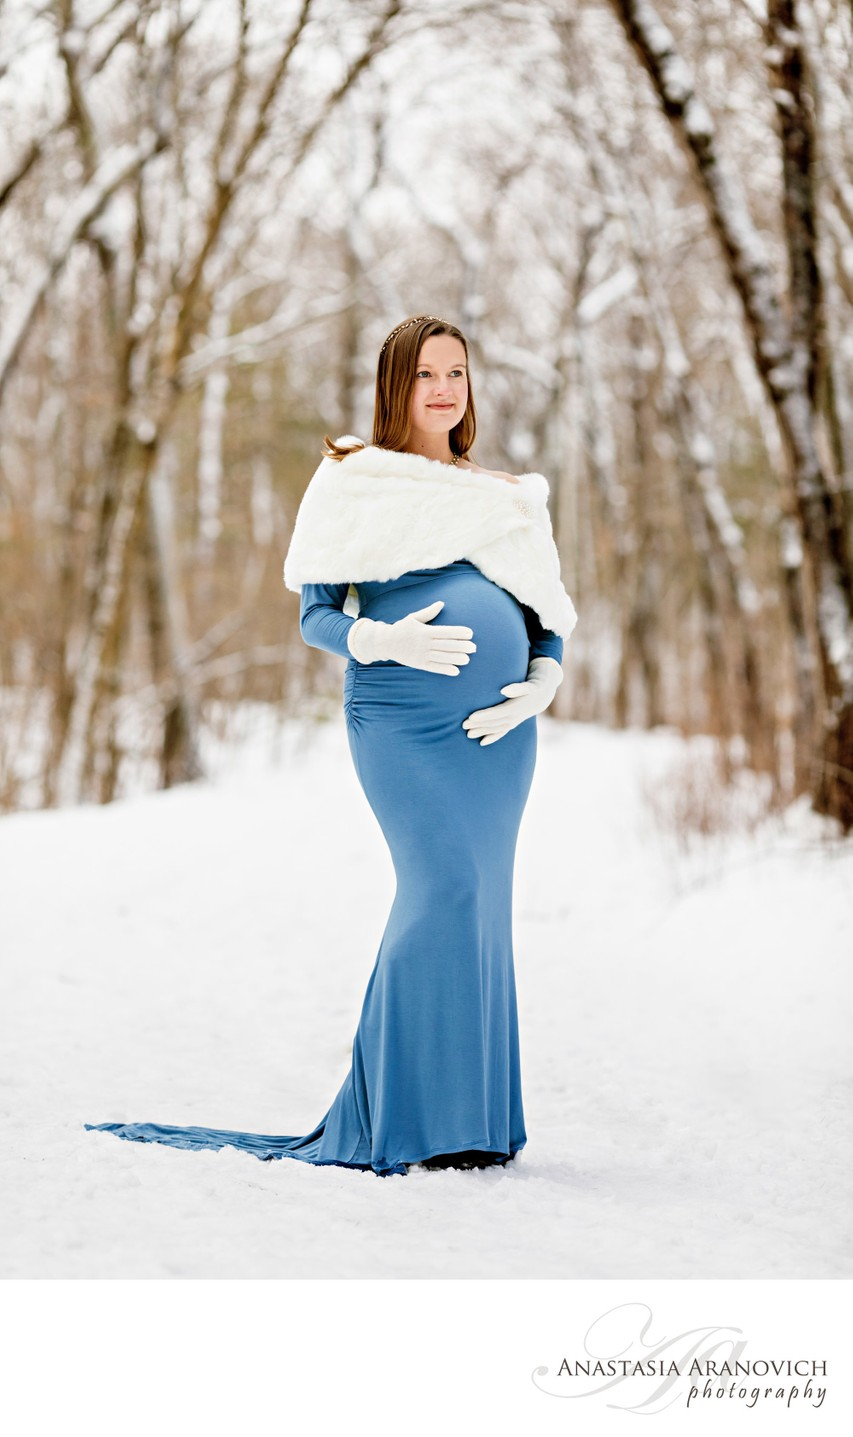 Winter Maternity Pictures in Boston, MA